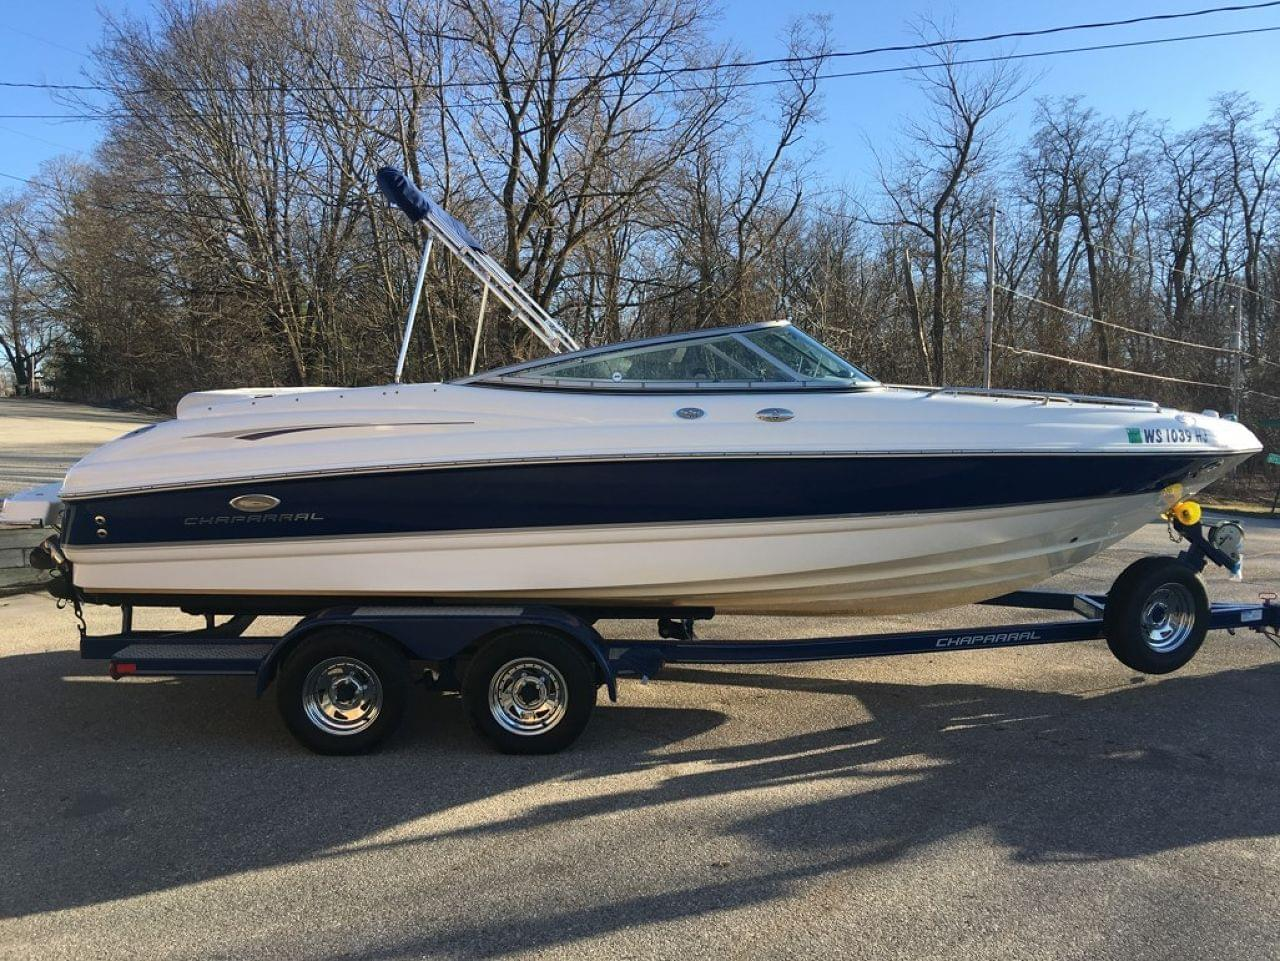 2006 Chaparral 210ssi 21 Foot 2006 Chaparral Motor Boat